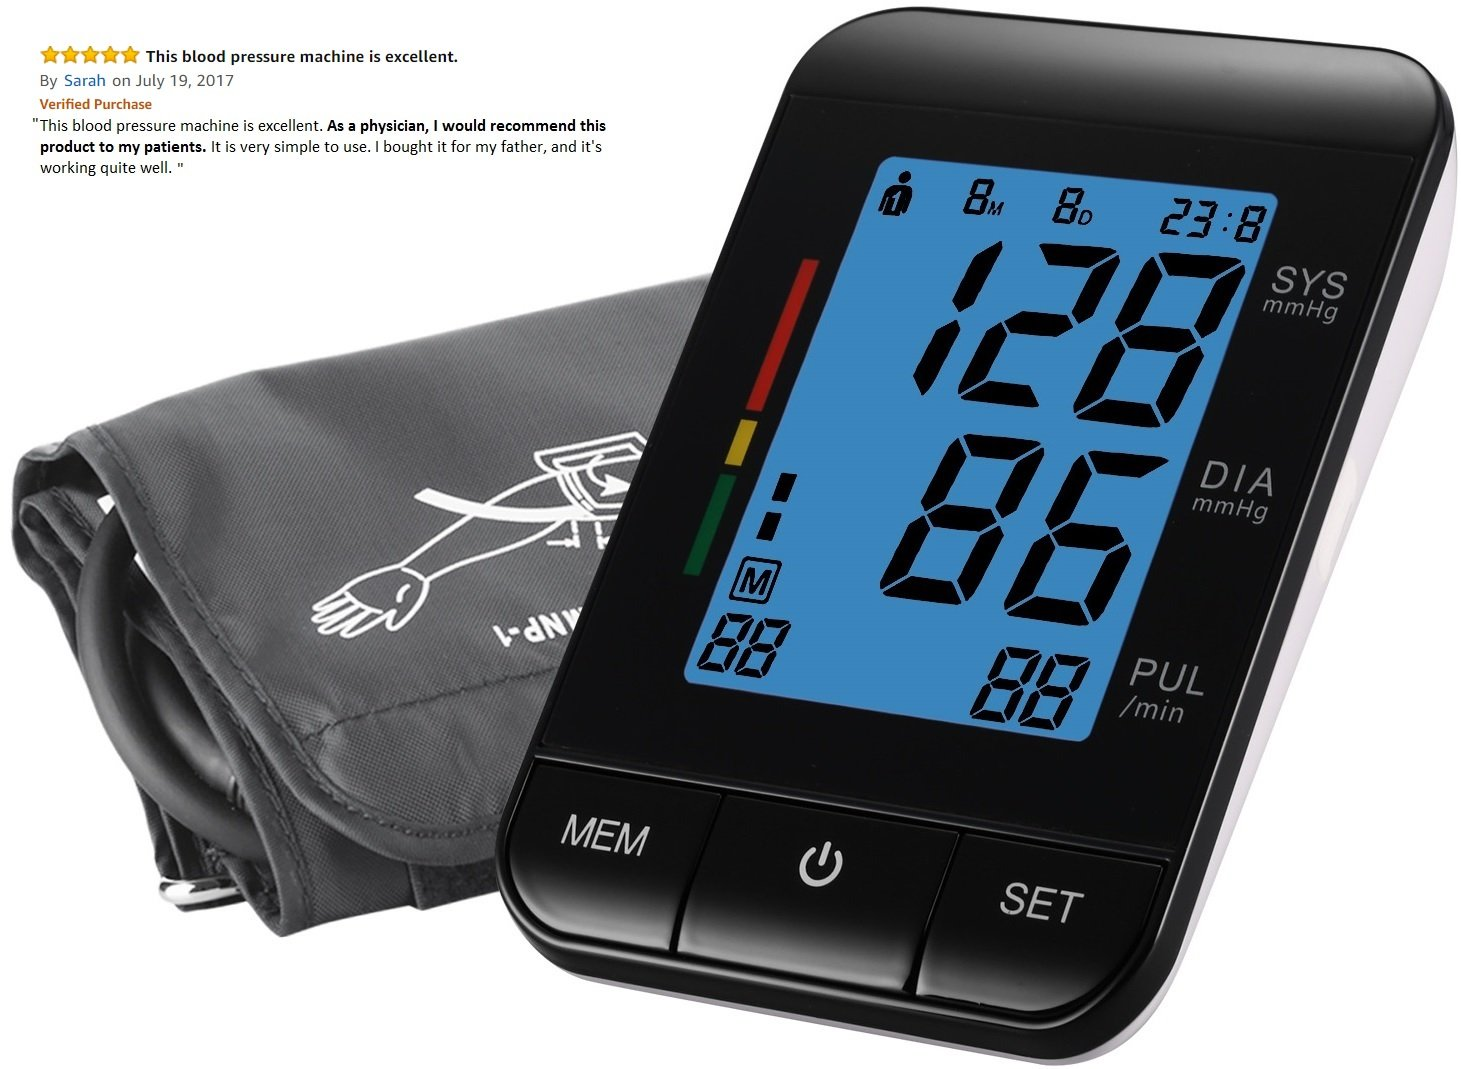 FDA Approved Automatic Clinical Digital Blood Pressure Monitor Machine with Large Screen Display Irregular Heartbeat BP and Adjustable Upper Arm Cuff Perfect Everyday Health Monitoring 2 YEAR WARRANTY by iLifePlus (Image #3)